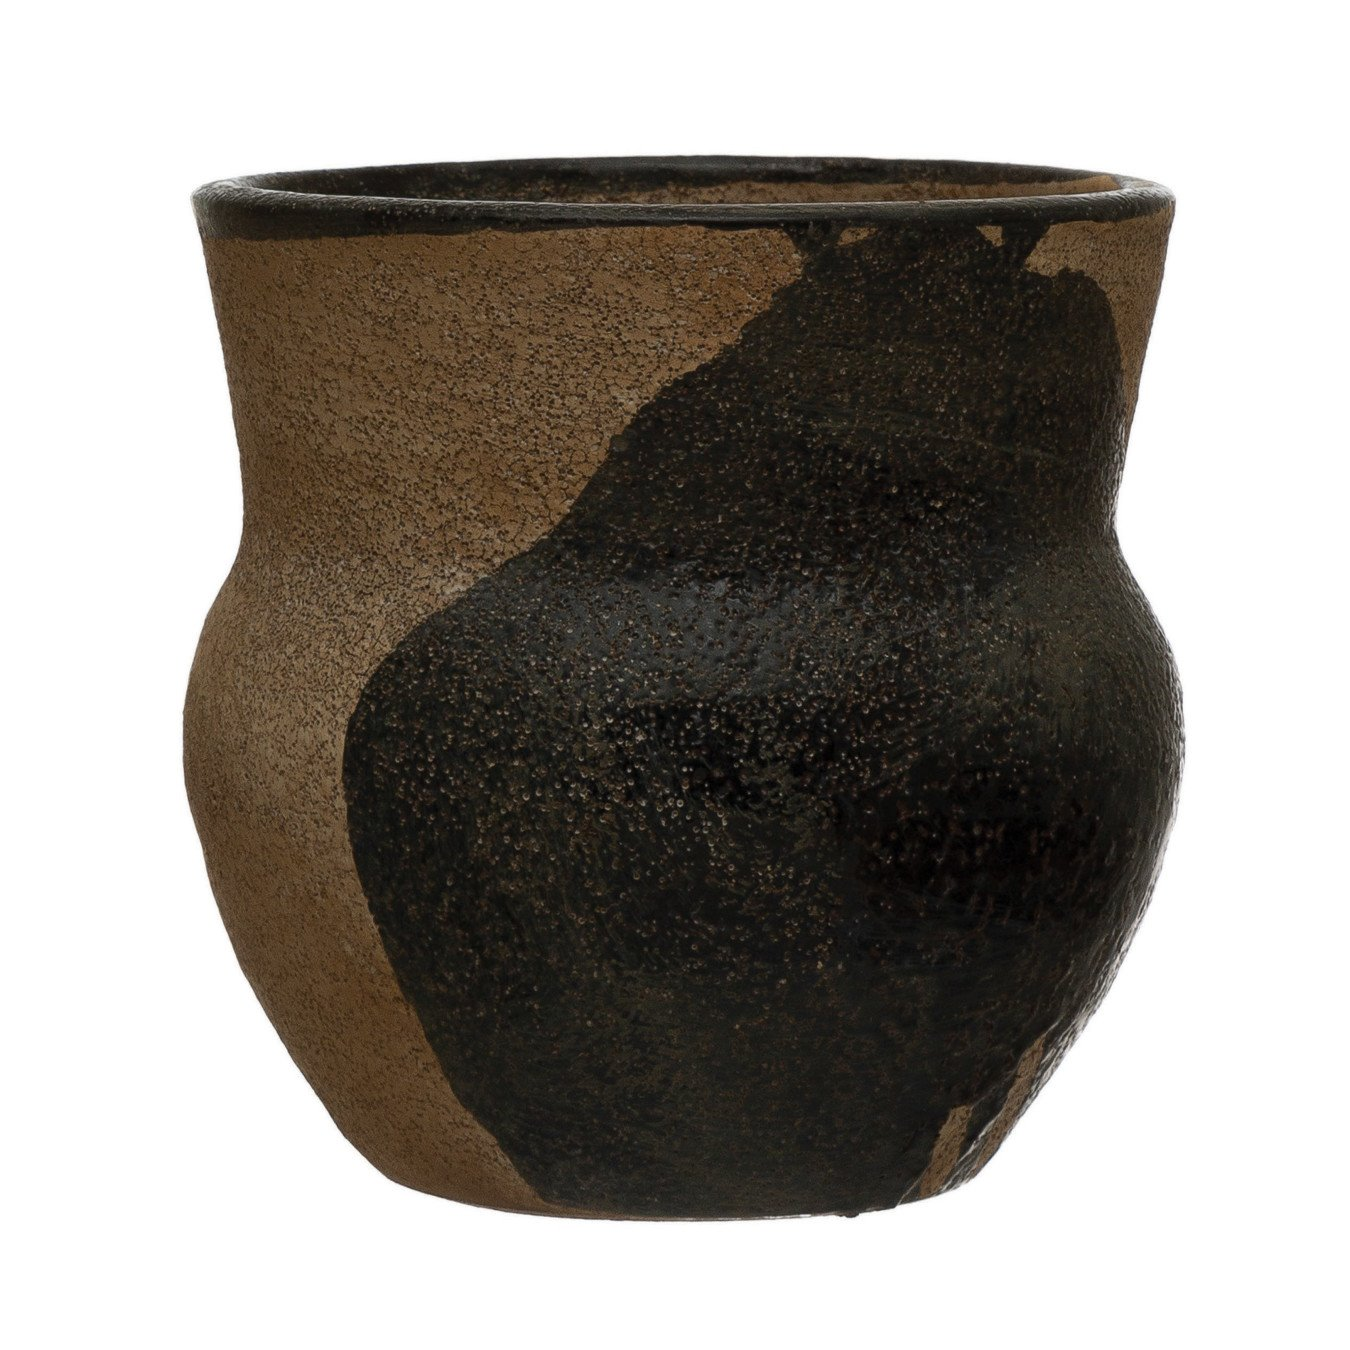 "Terra-cotta Planter with Design, Brown & Black (Holds 4"" Pot)"